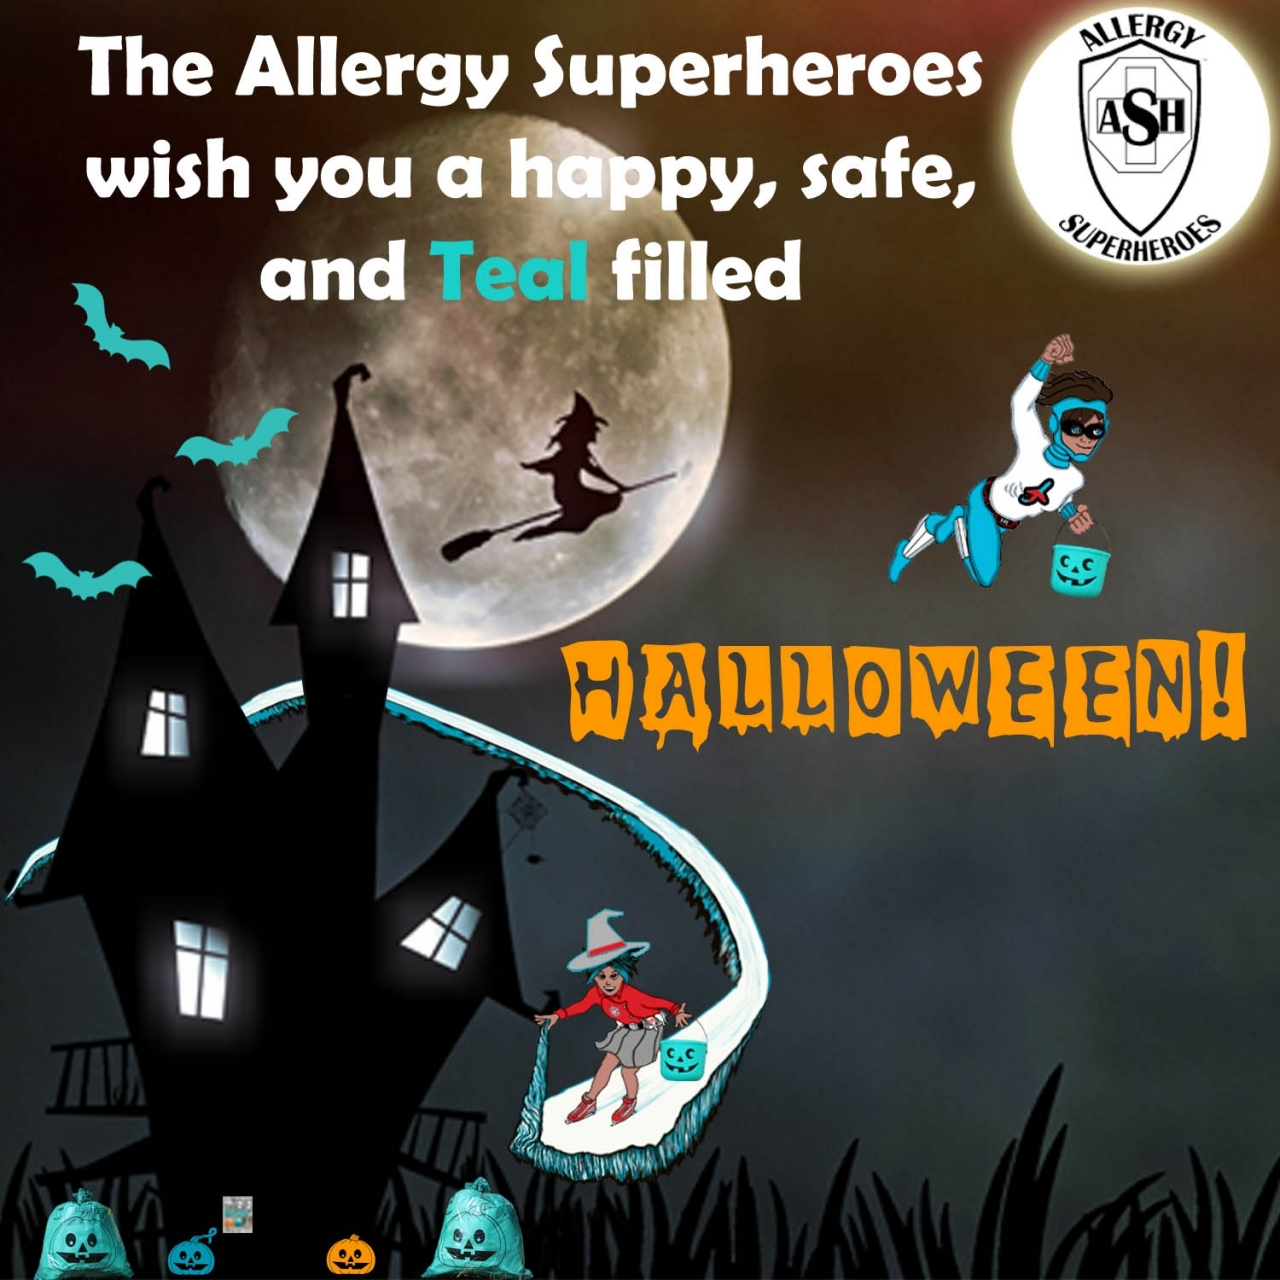 10 Happy Halloween from the food Allergy Superheroes.jpg